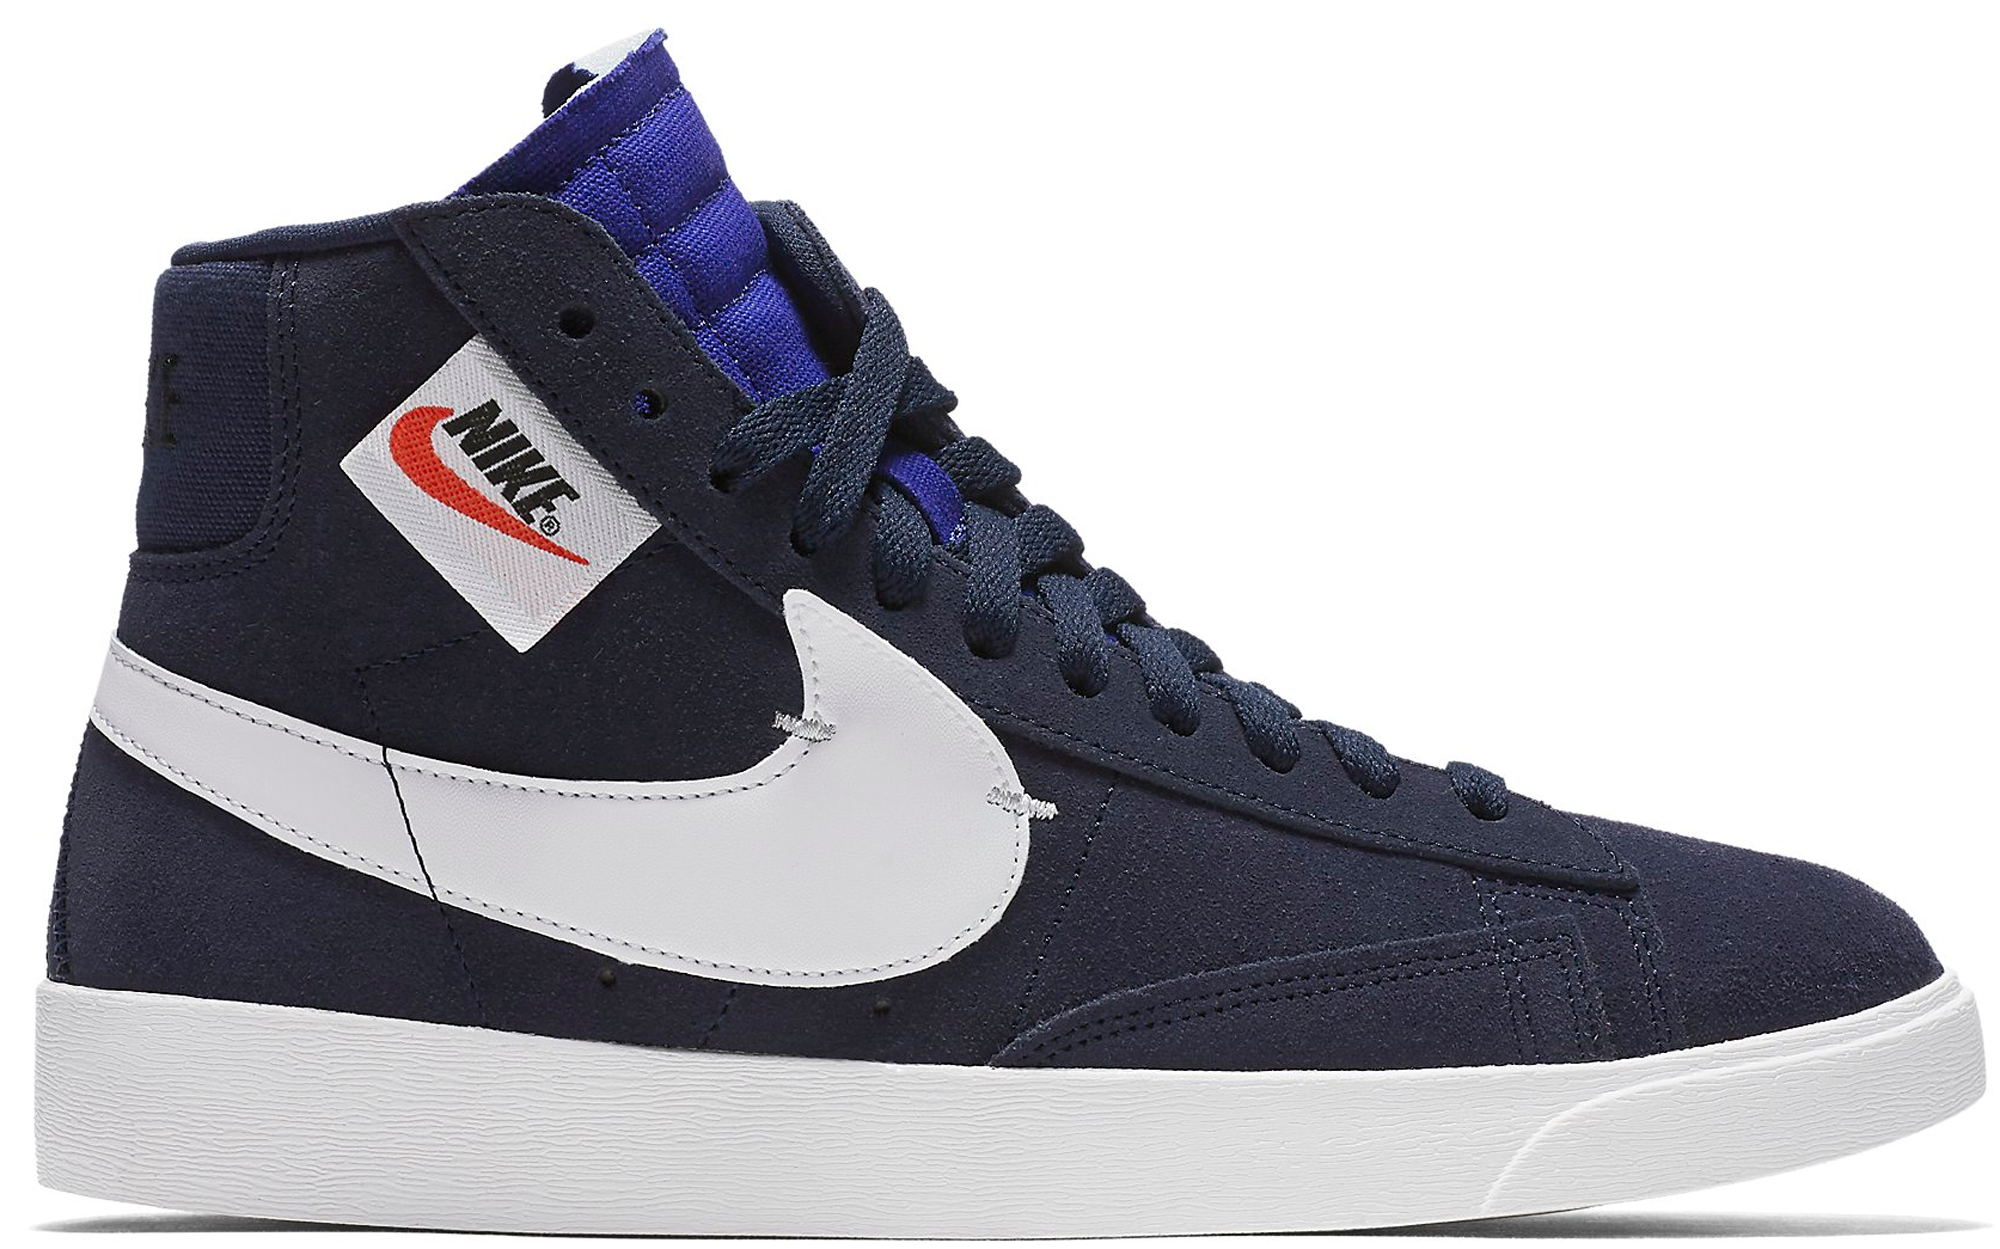 Nike Blazer Mid Rebel Blackened Blue (W)